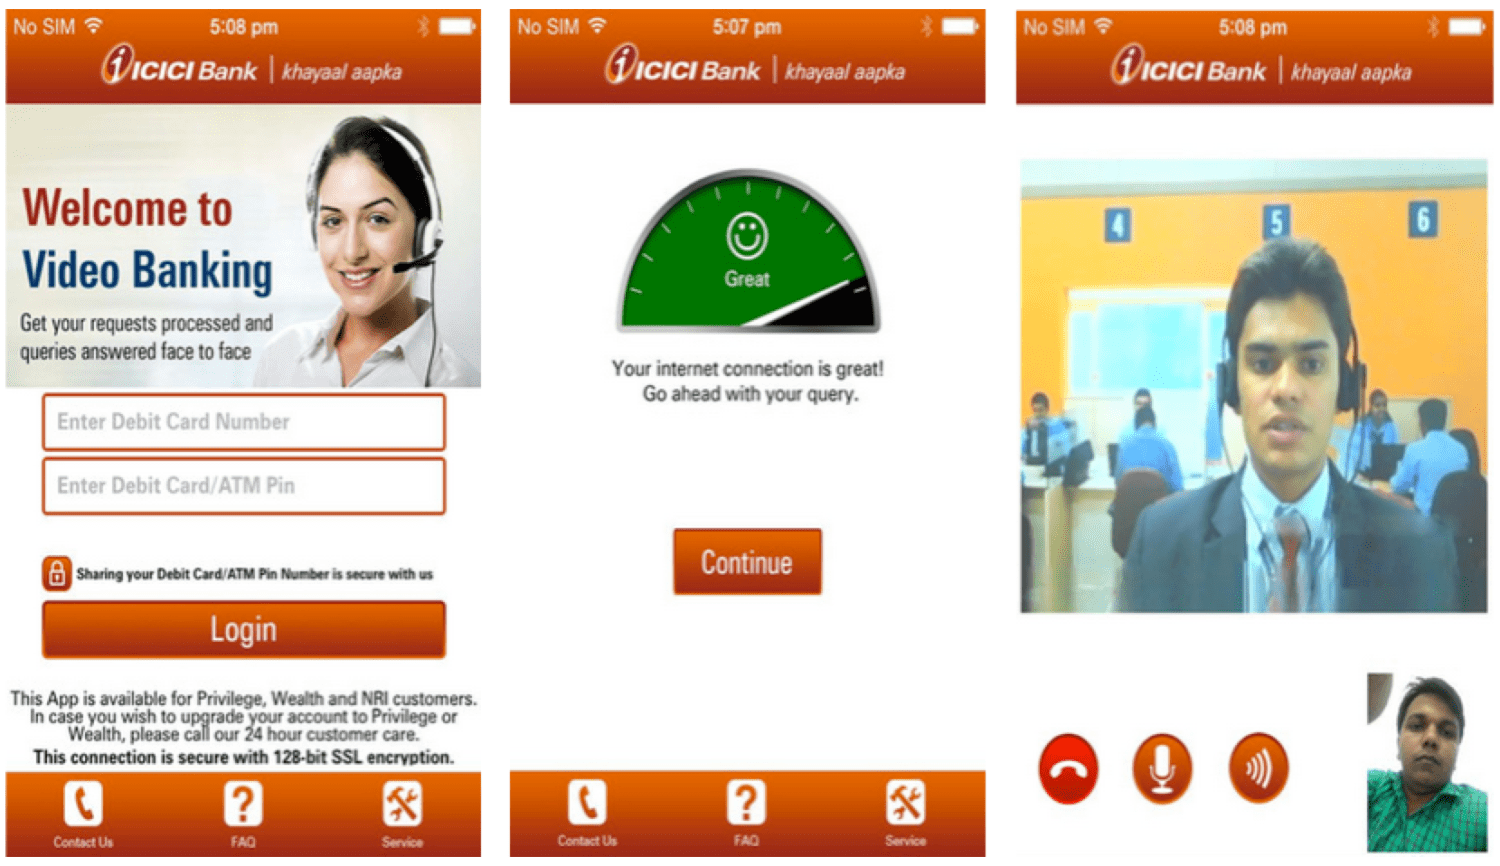 ICICI Bank Video Banking finno